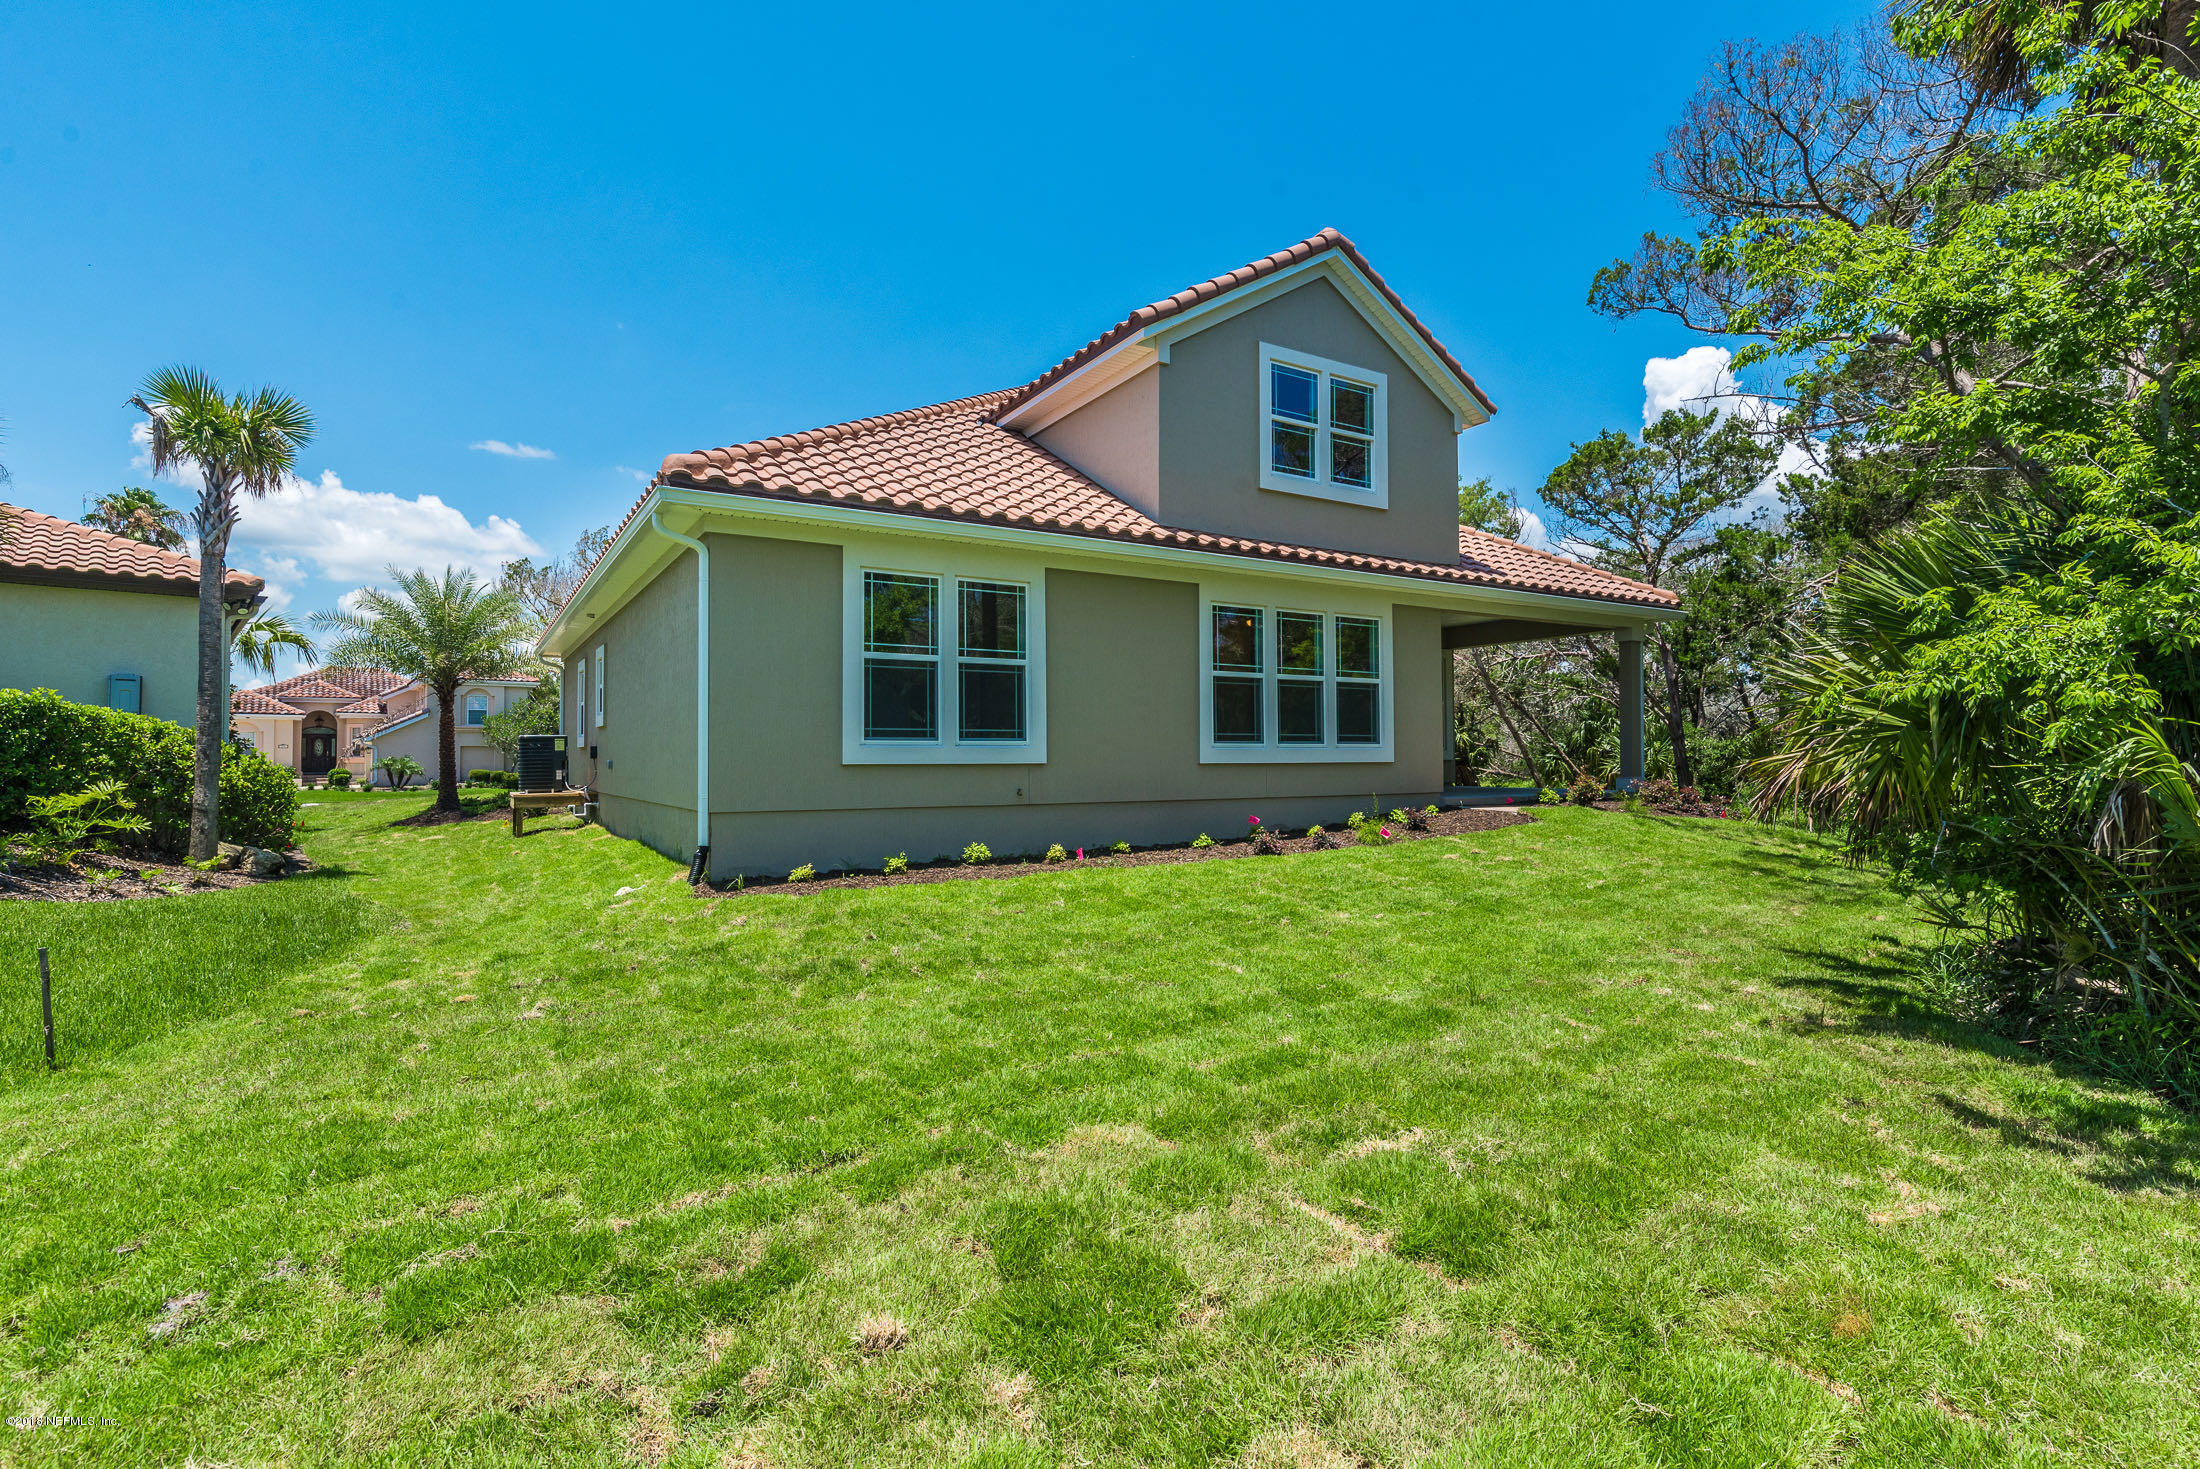 115 SPOONBILL POINT, ST AUGUSTINE, FLORIDA 32080, 4 Bedrooms Bedrooms, ,3 BathroomsBathrooms,Residential - single family,For sale,SPOONBILL POINT,942815